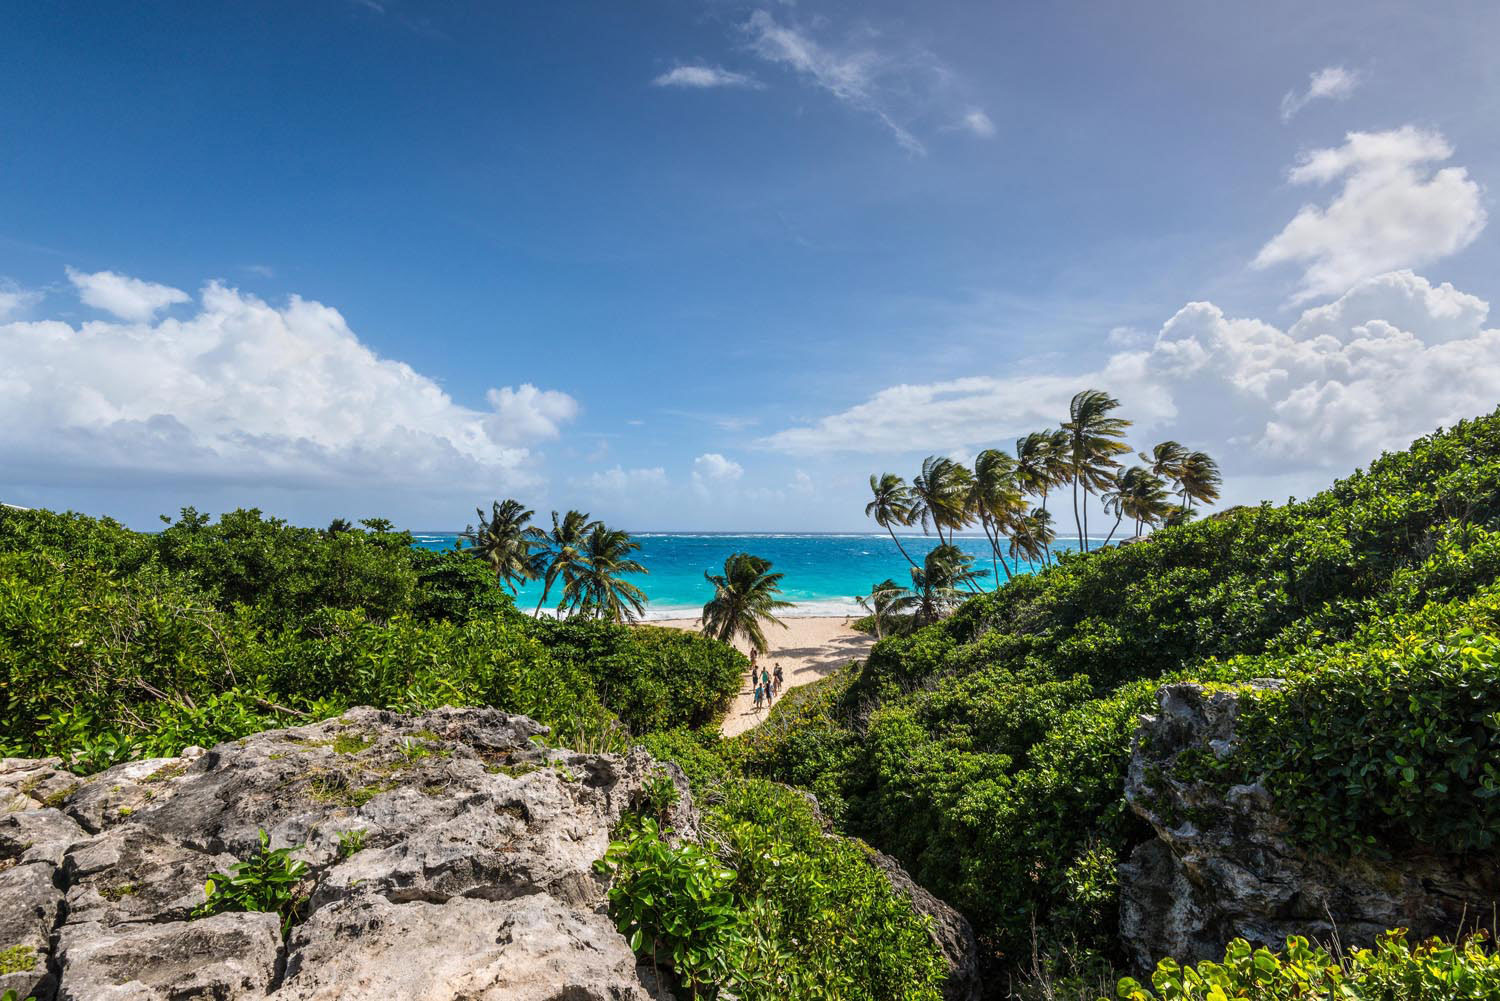 Bottom Bay on the southeast coast of Barbados. Photograph by Byvalet/Alamy Stock Photo